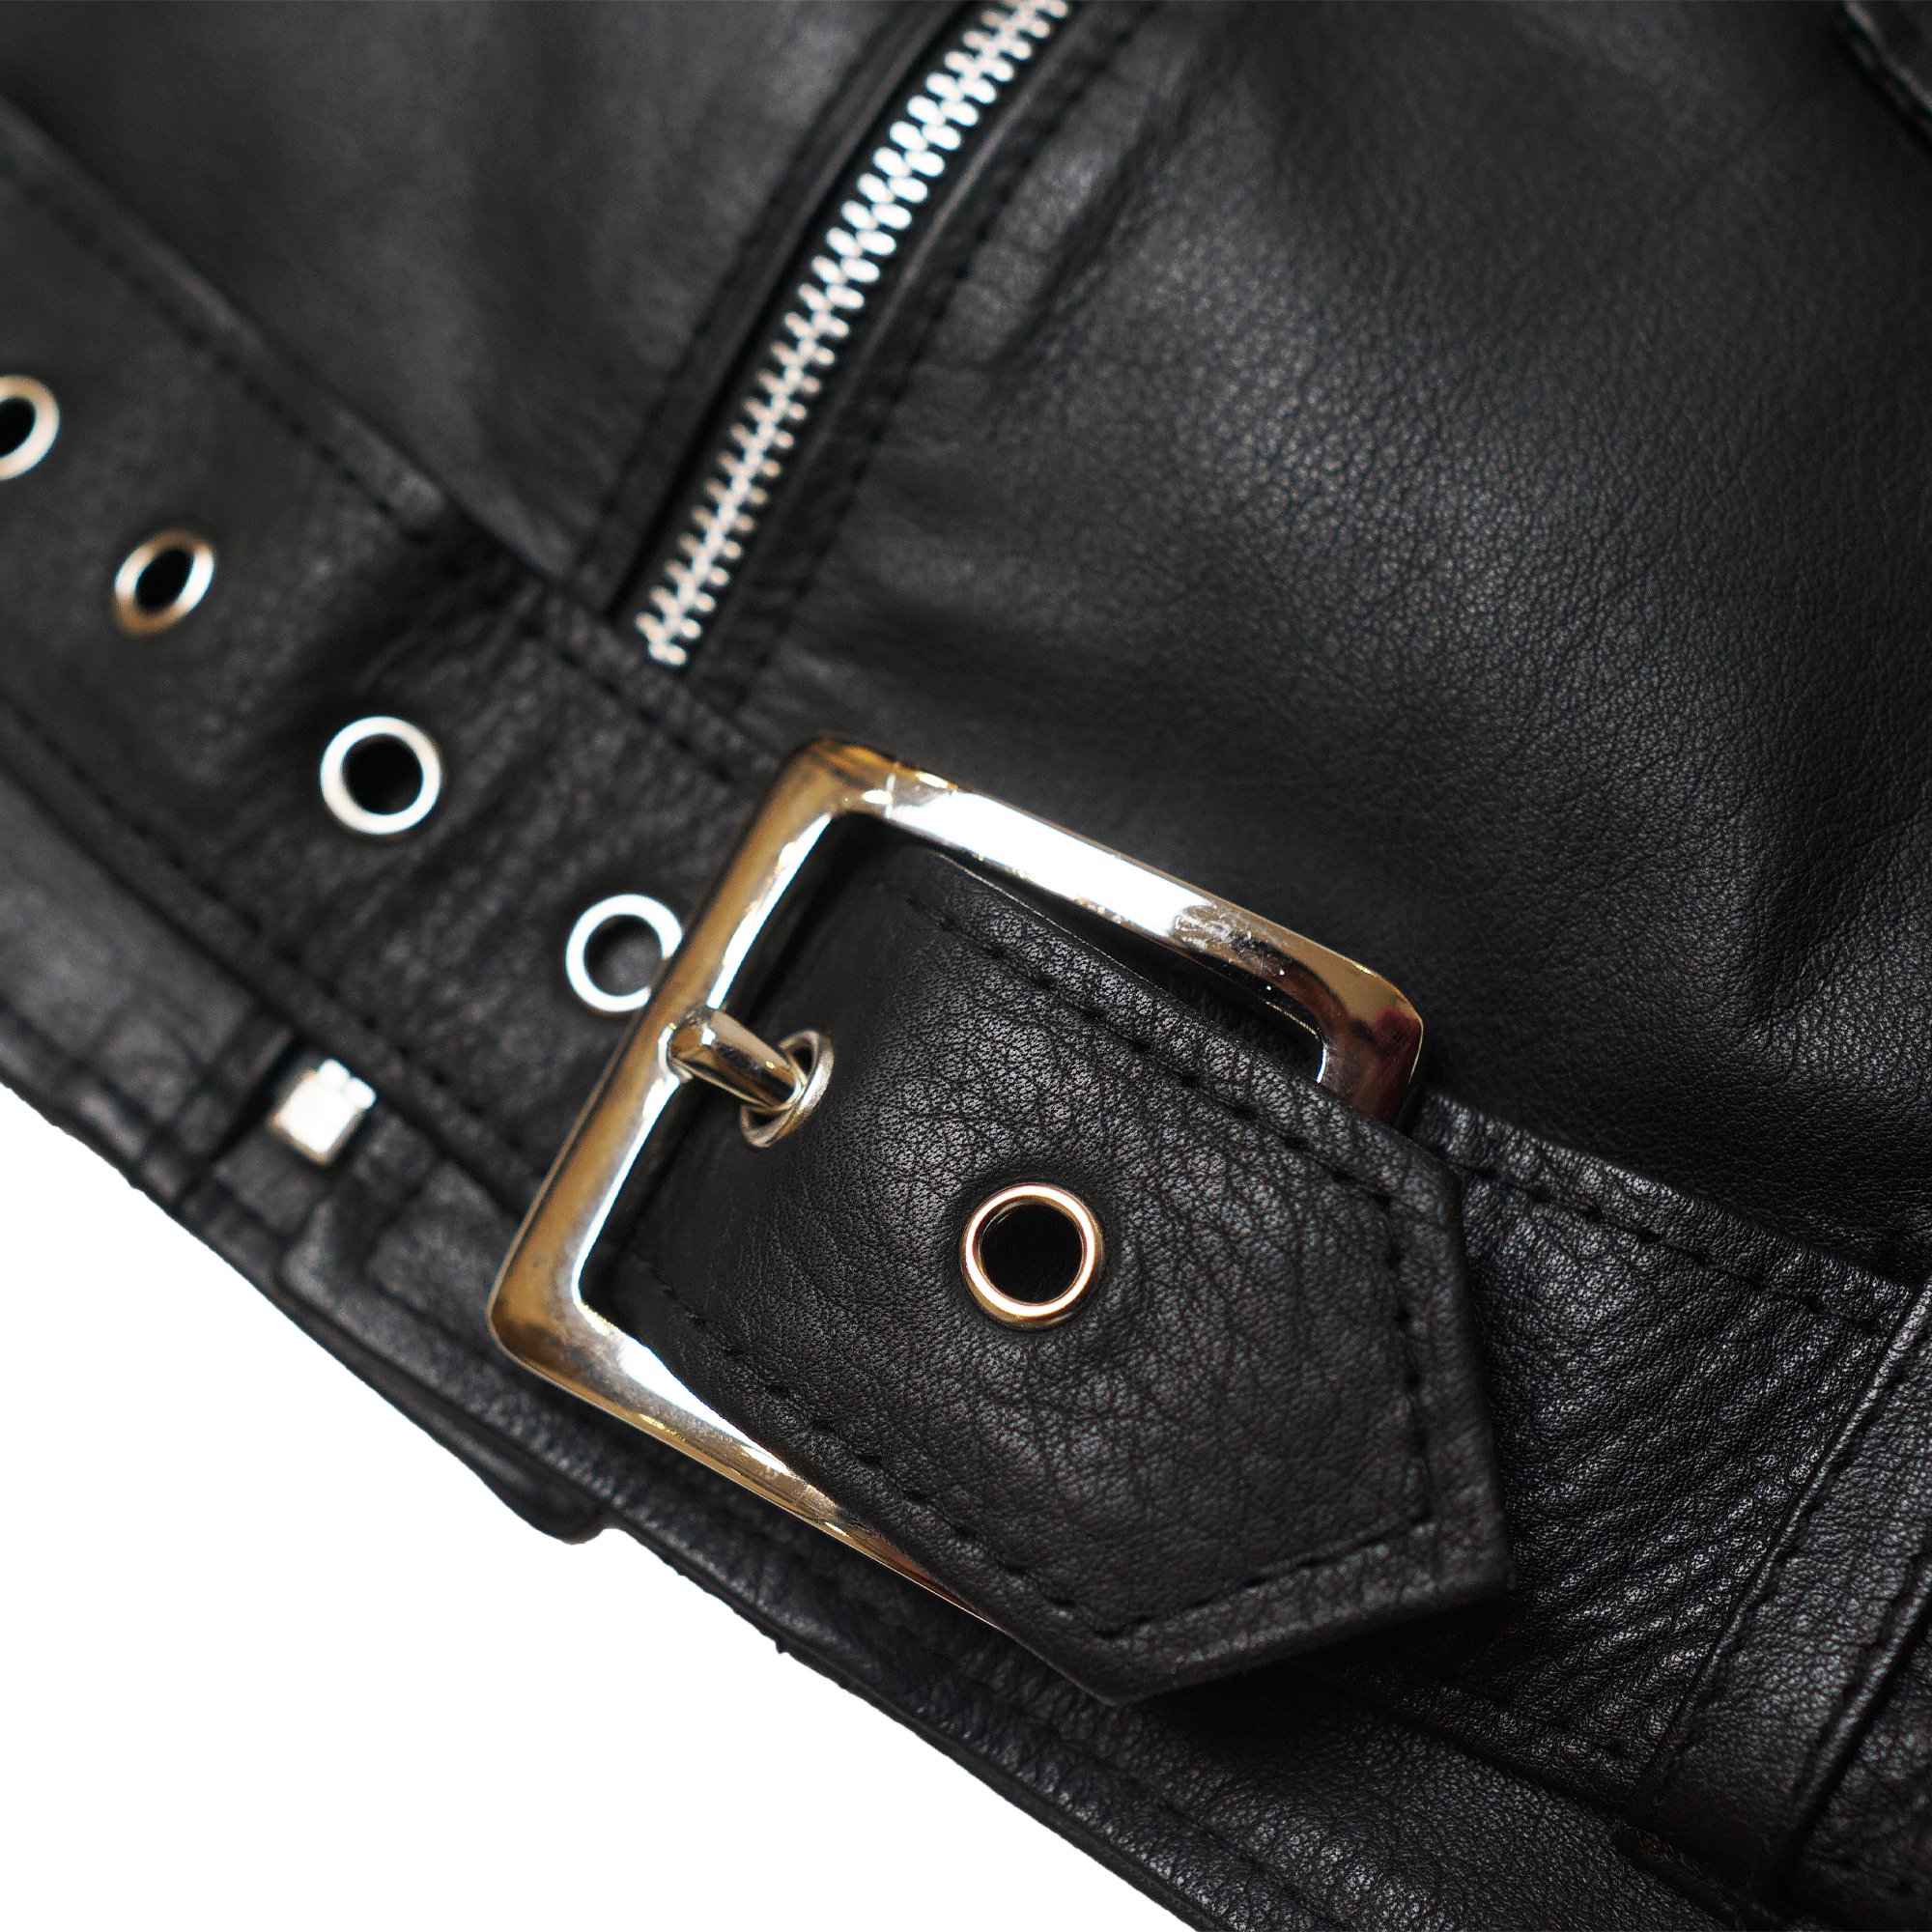 lawless_leather_jacket_detail_4